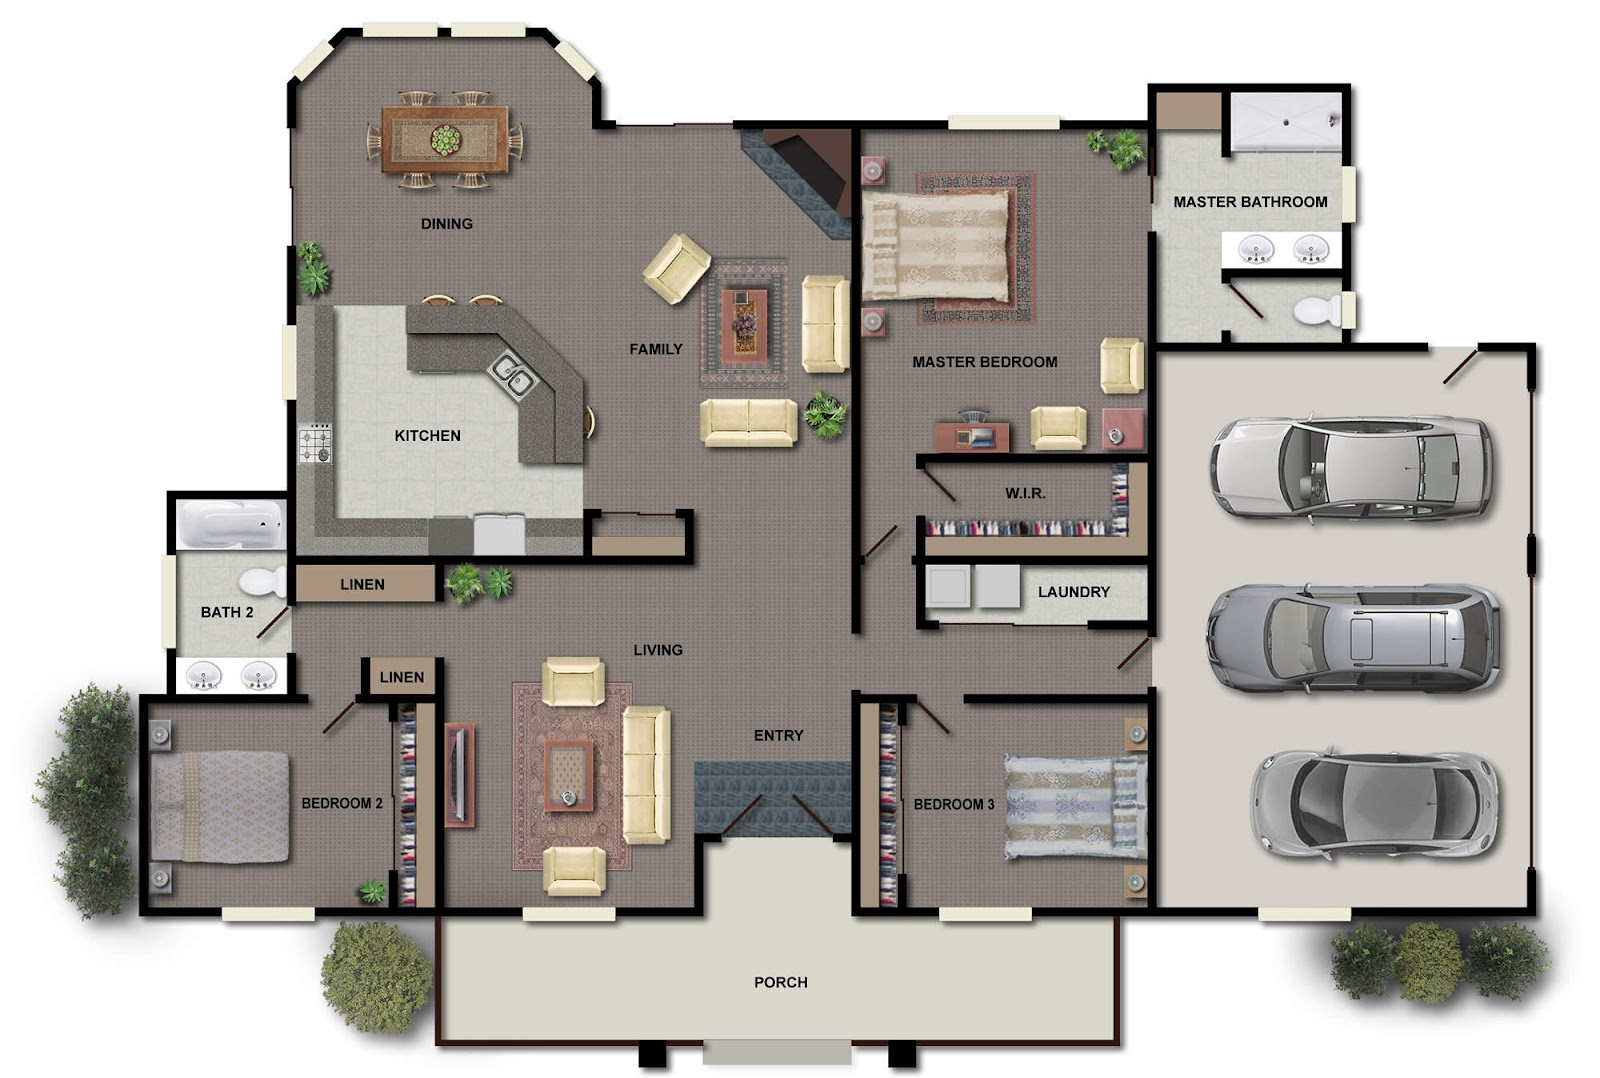 Modern House Floor Plans Of Modern House Floor Plans Home Design Ideas U Home Design